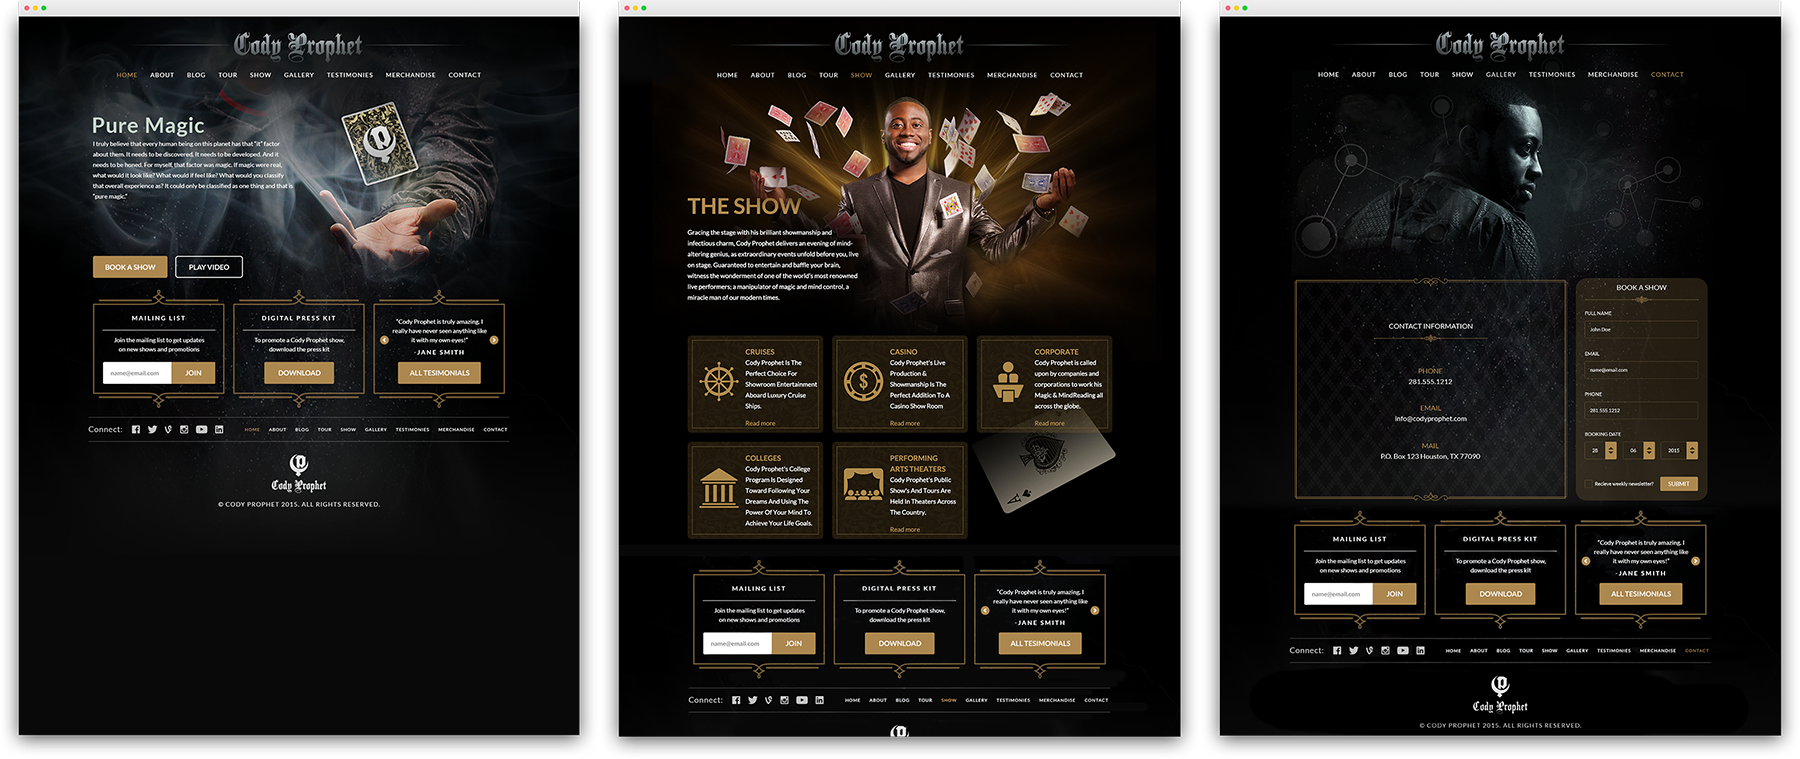 Cody.Prophet.multipages.mockup